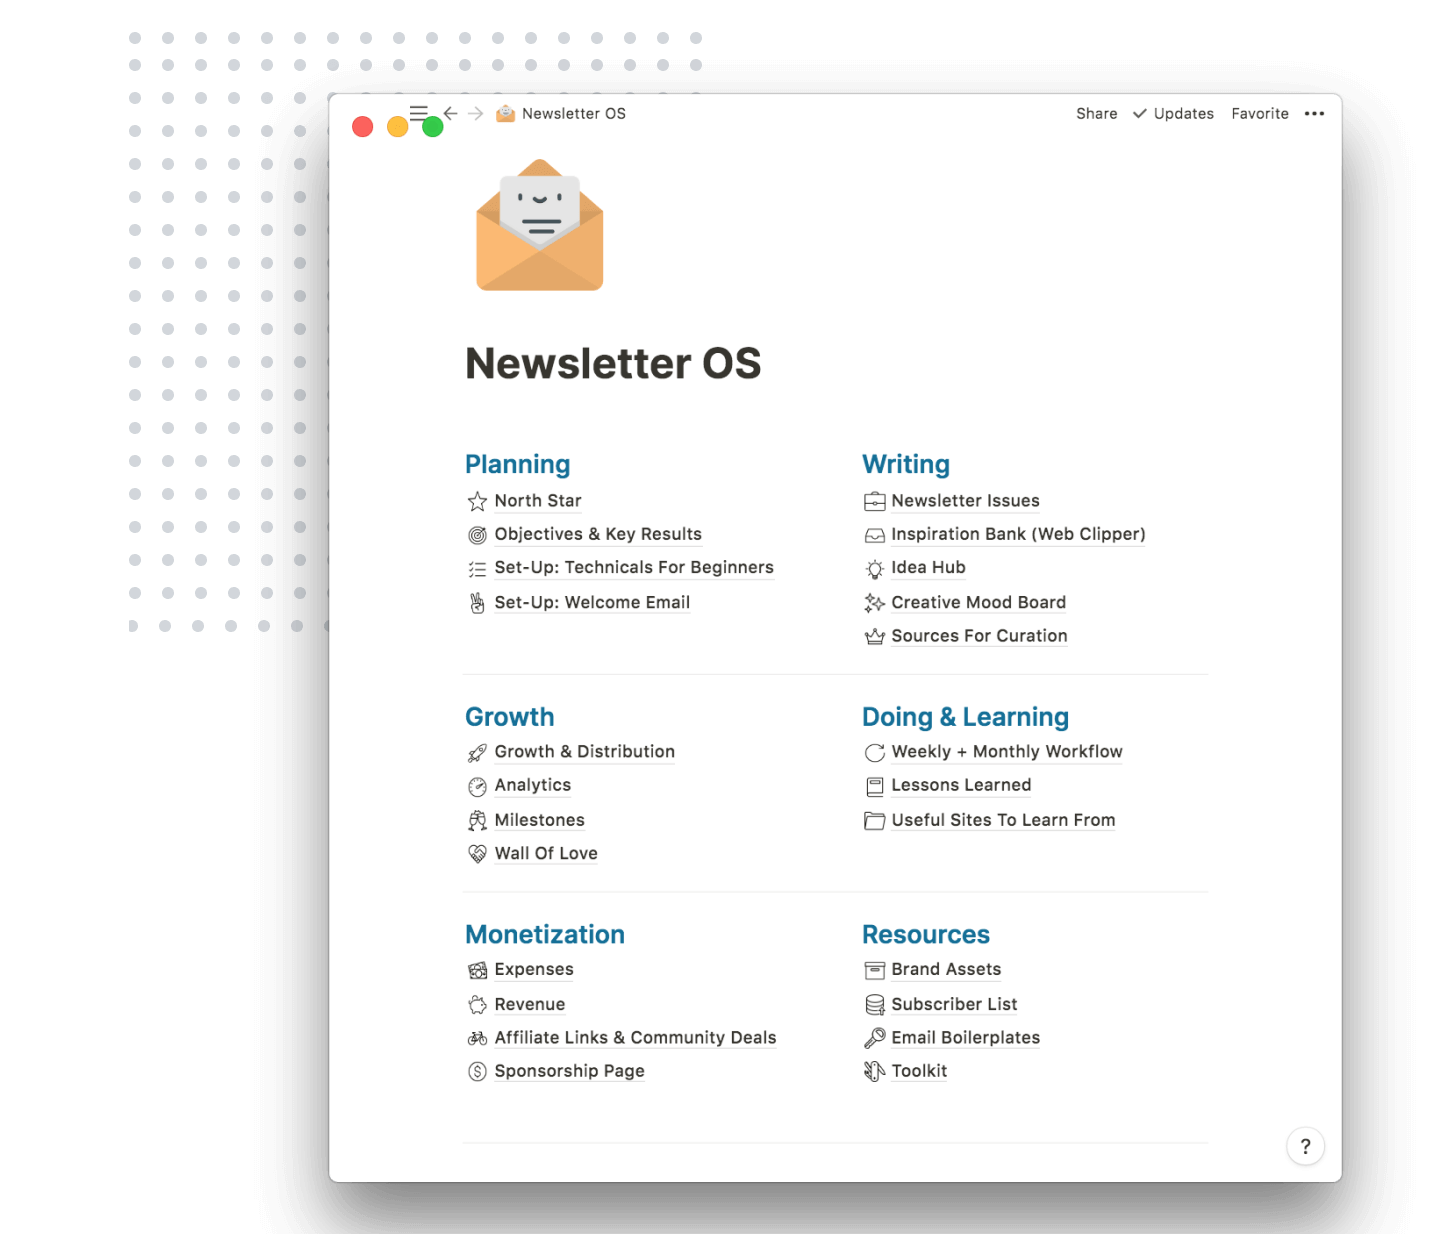 Newsletter OS Overview